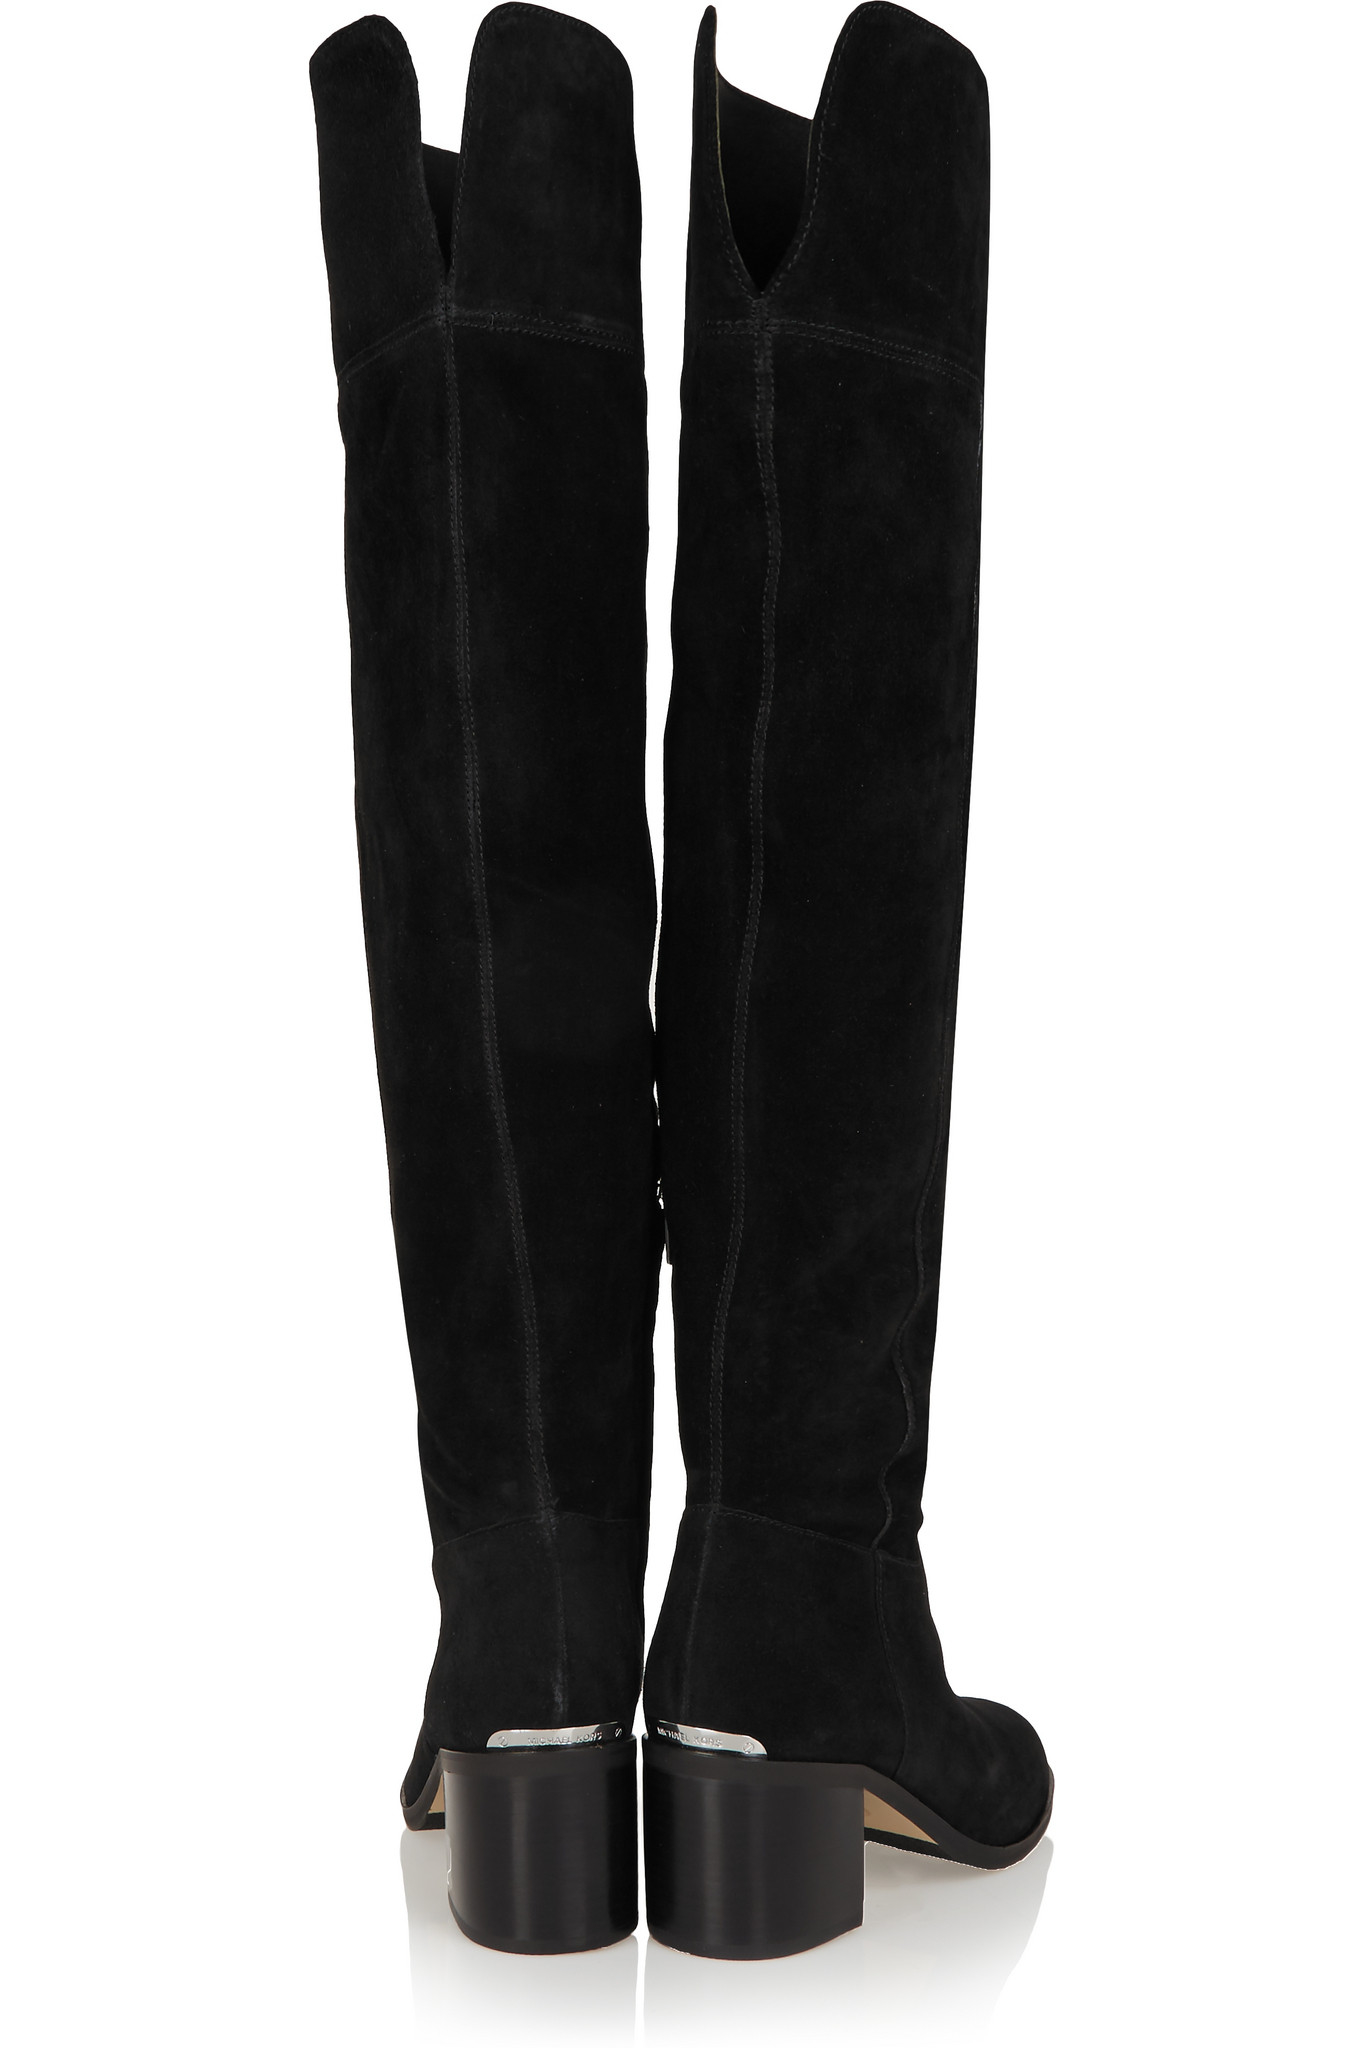 af32fe25432 MICHAEL Michael Kors Paulette Suede Over-the-knee Boots in Black - Lyst